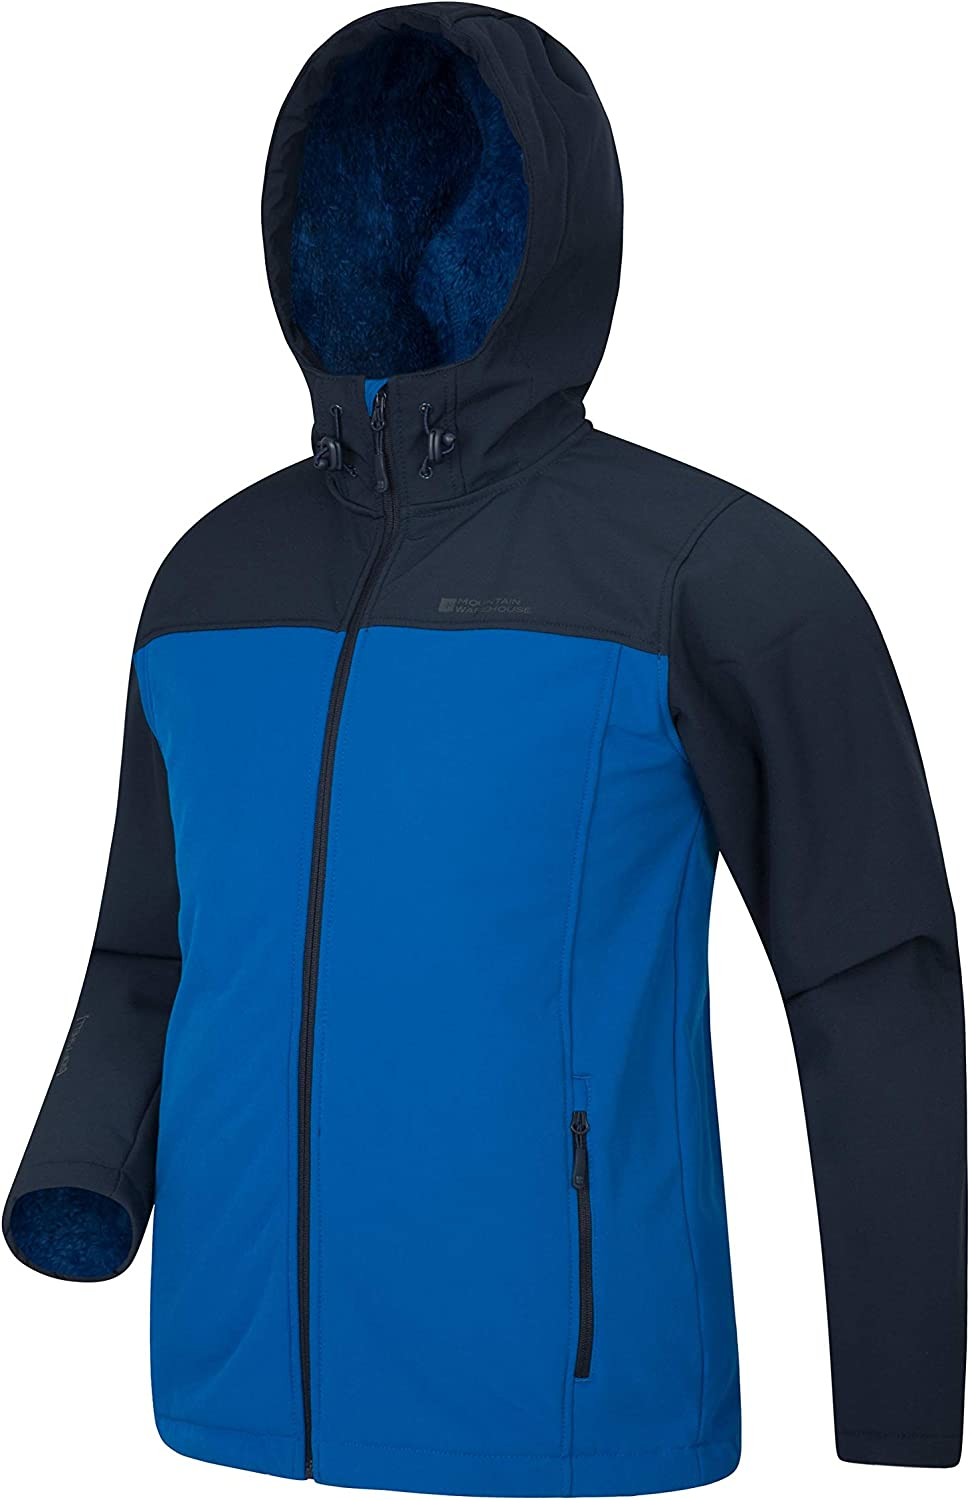 Camping Fleece Lined Outerwear Bonded Fabric Jacket Water Resistant Rain Sweater Clothing for Winter Walking Outdoor Mountain Warehouse Arctic II Mens Softshell